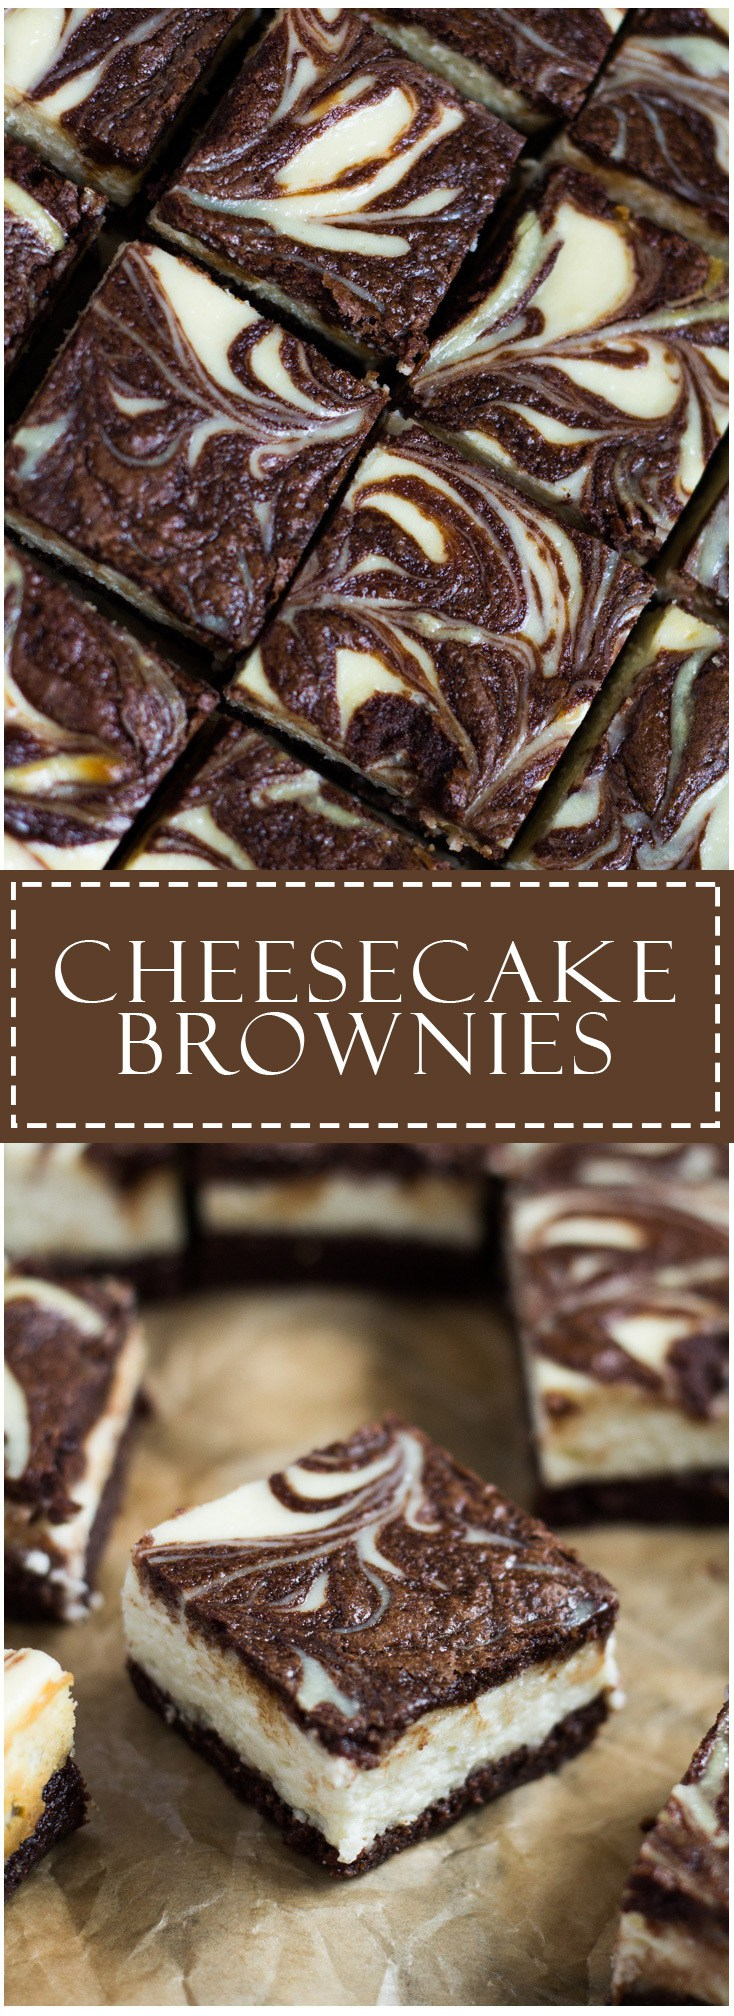 Cheesecake Brownies | Marshas Baking Addiction